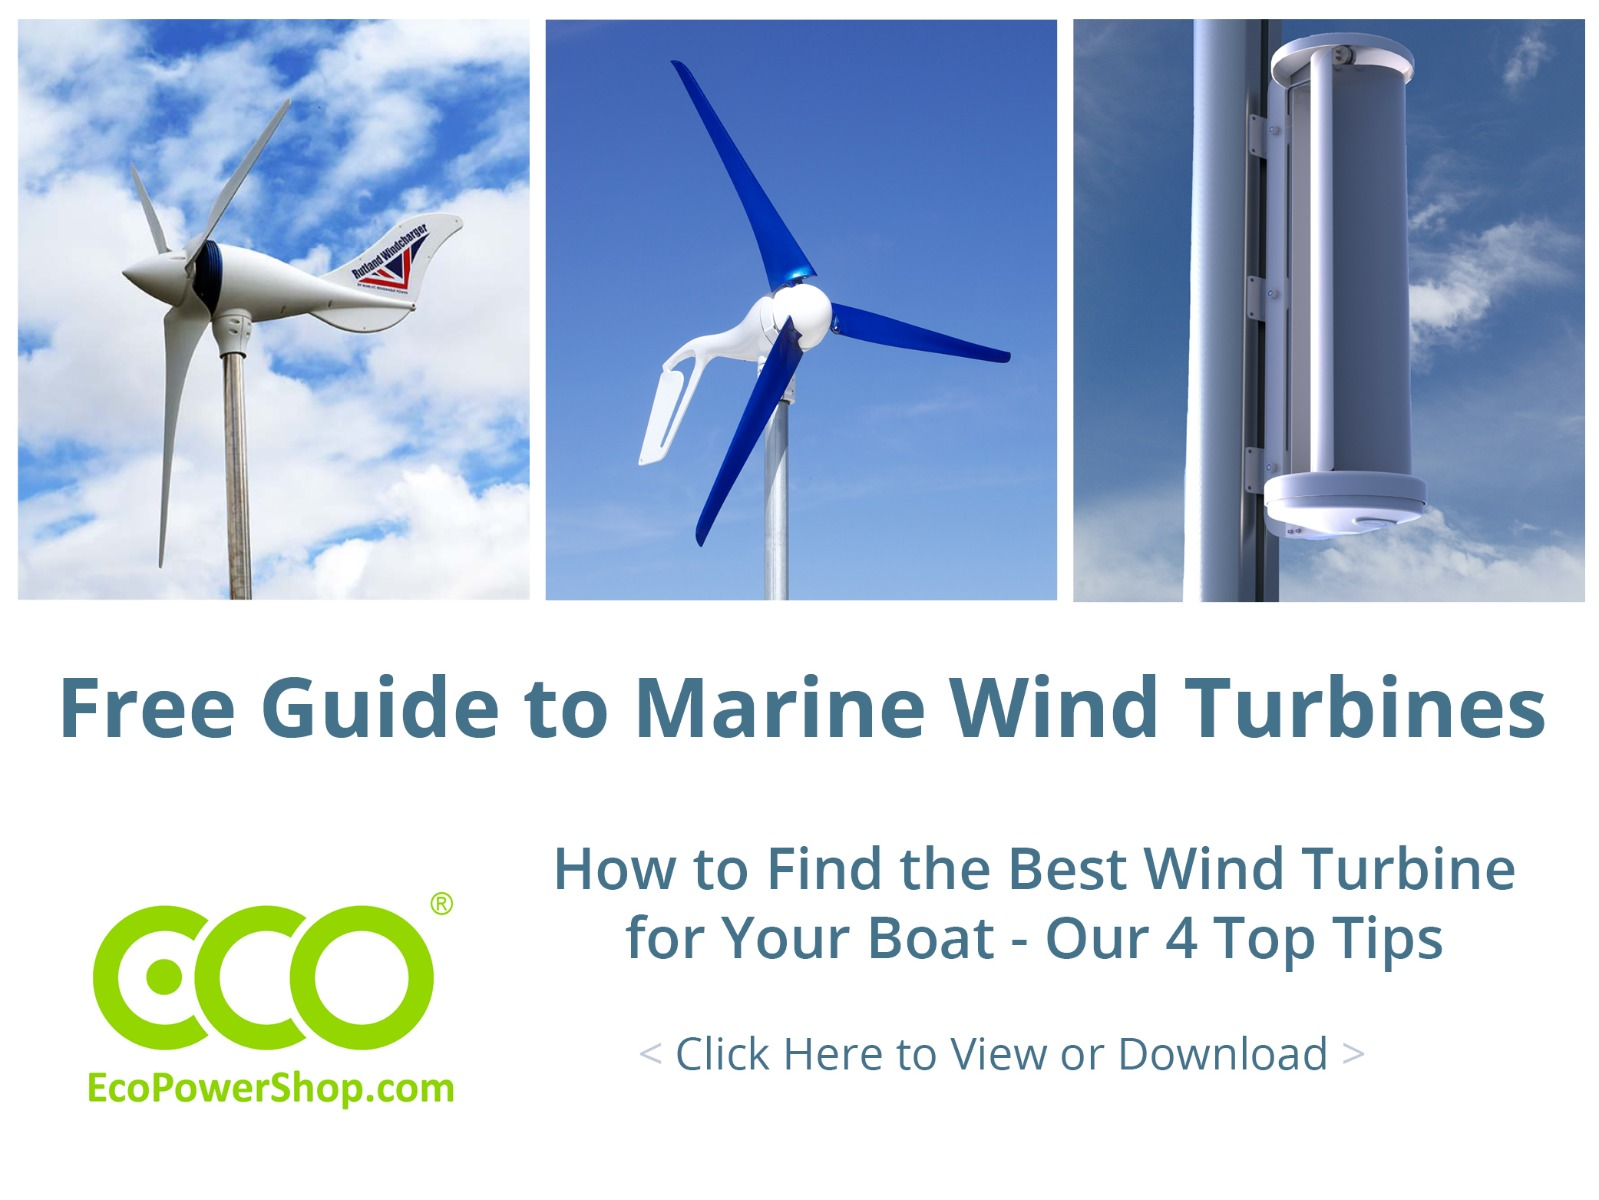 Link to Marine Wind Turbine Guide